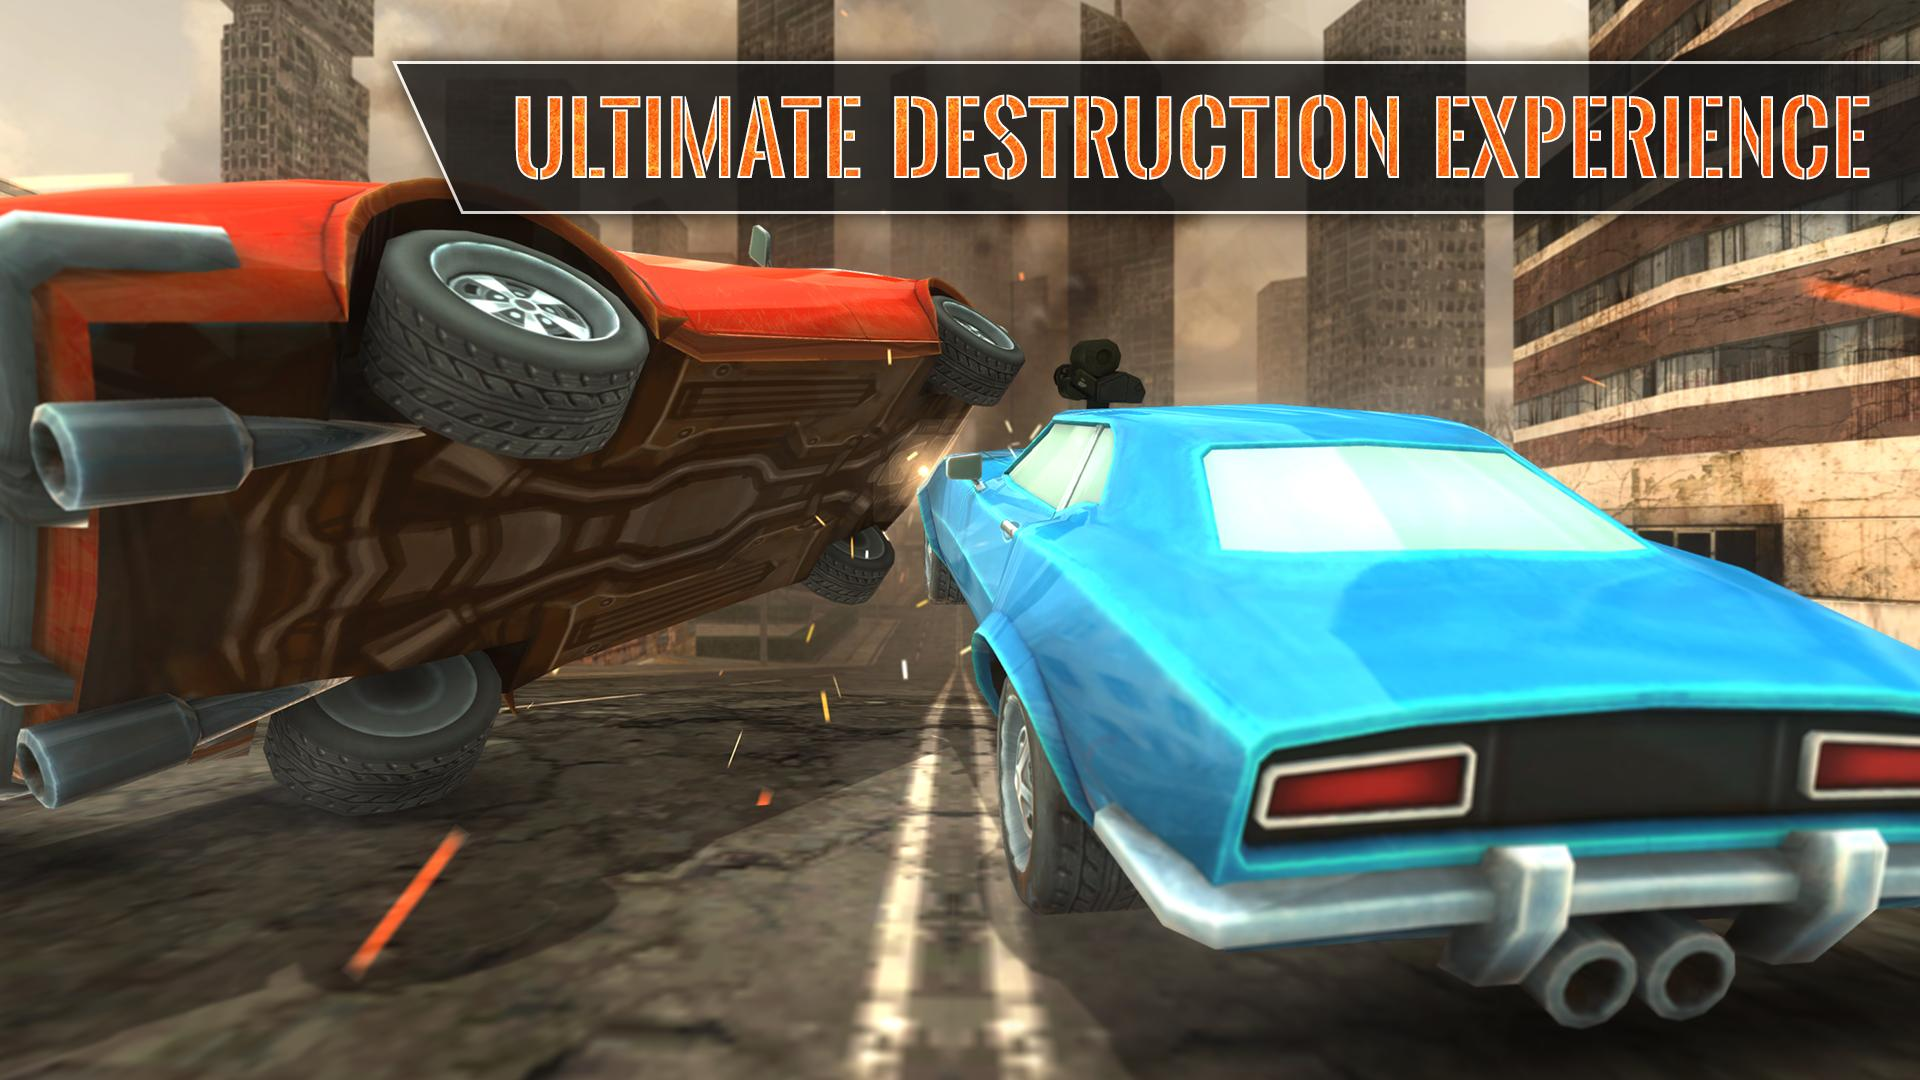 Apocalypse Indestructible Race Demolition Derby For Android Apk Download